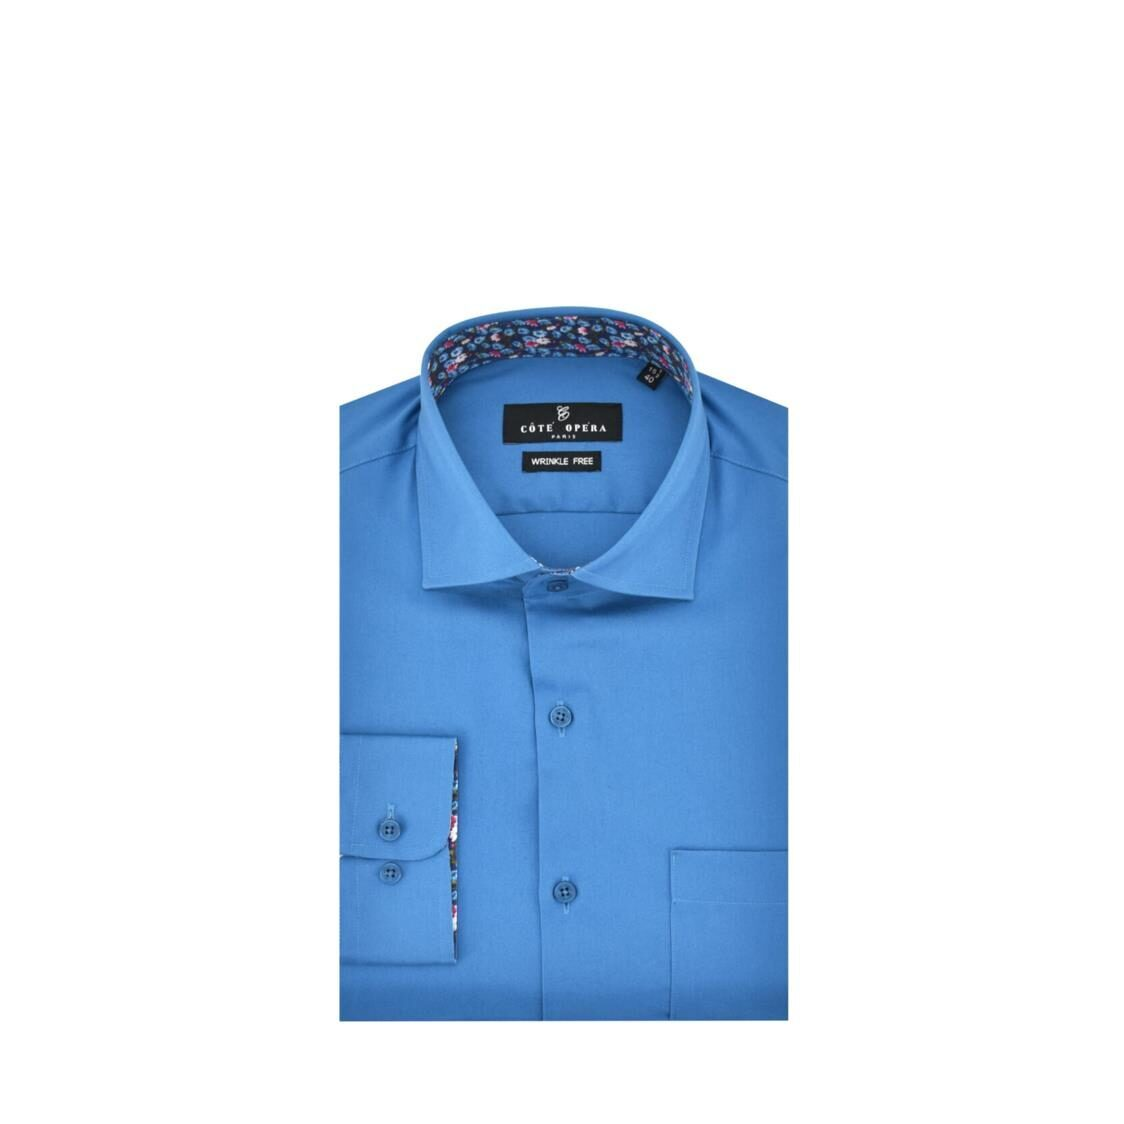 Cote Opera Long-Sleeved Shirt with Wrinkle-Free  Moist Cured finish - Navy